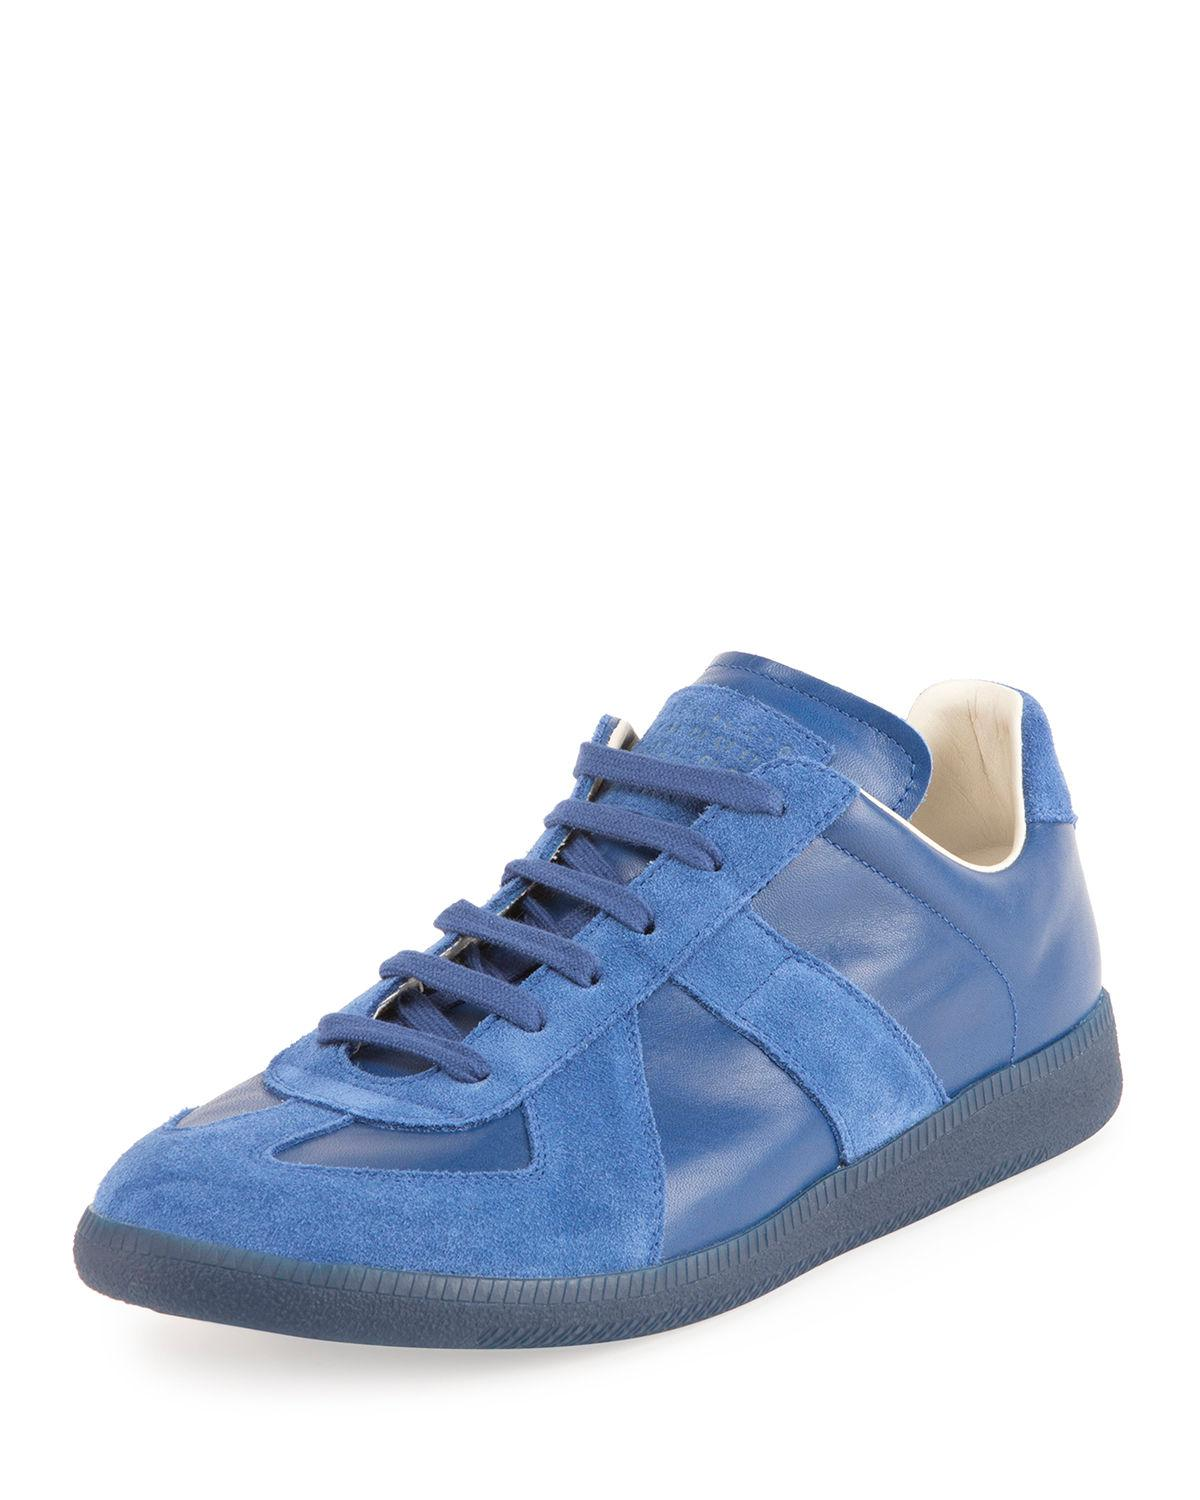 Replica Runner sneakers - Blue Maison Martin Margiela Outlet 2018 Unisex Explore For Sale Store Cheap Online Pay With Visa Online Discount Sale Online riKTtdeQh